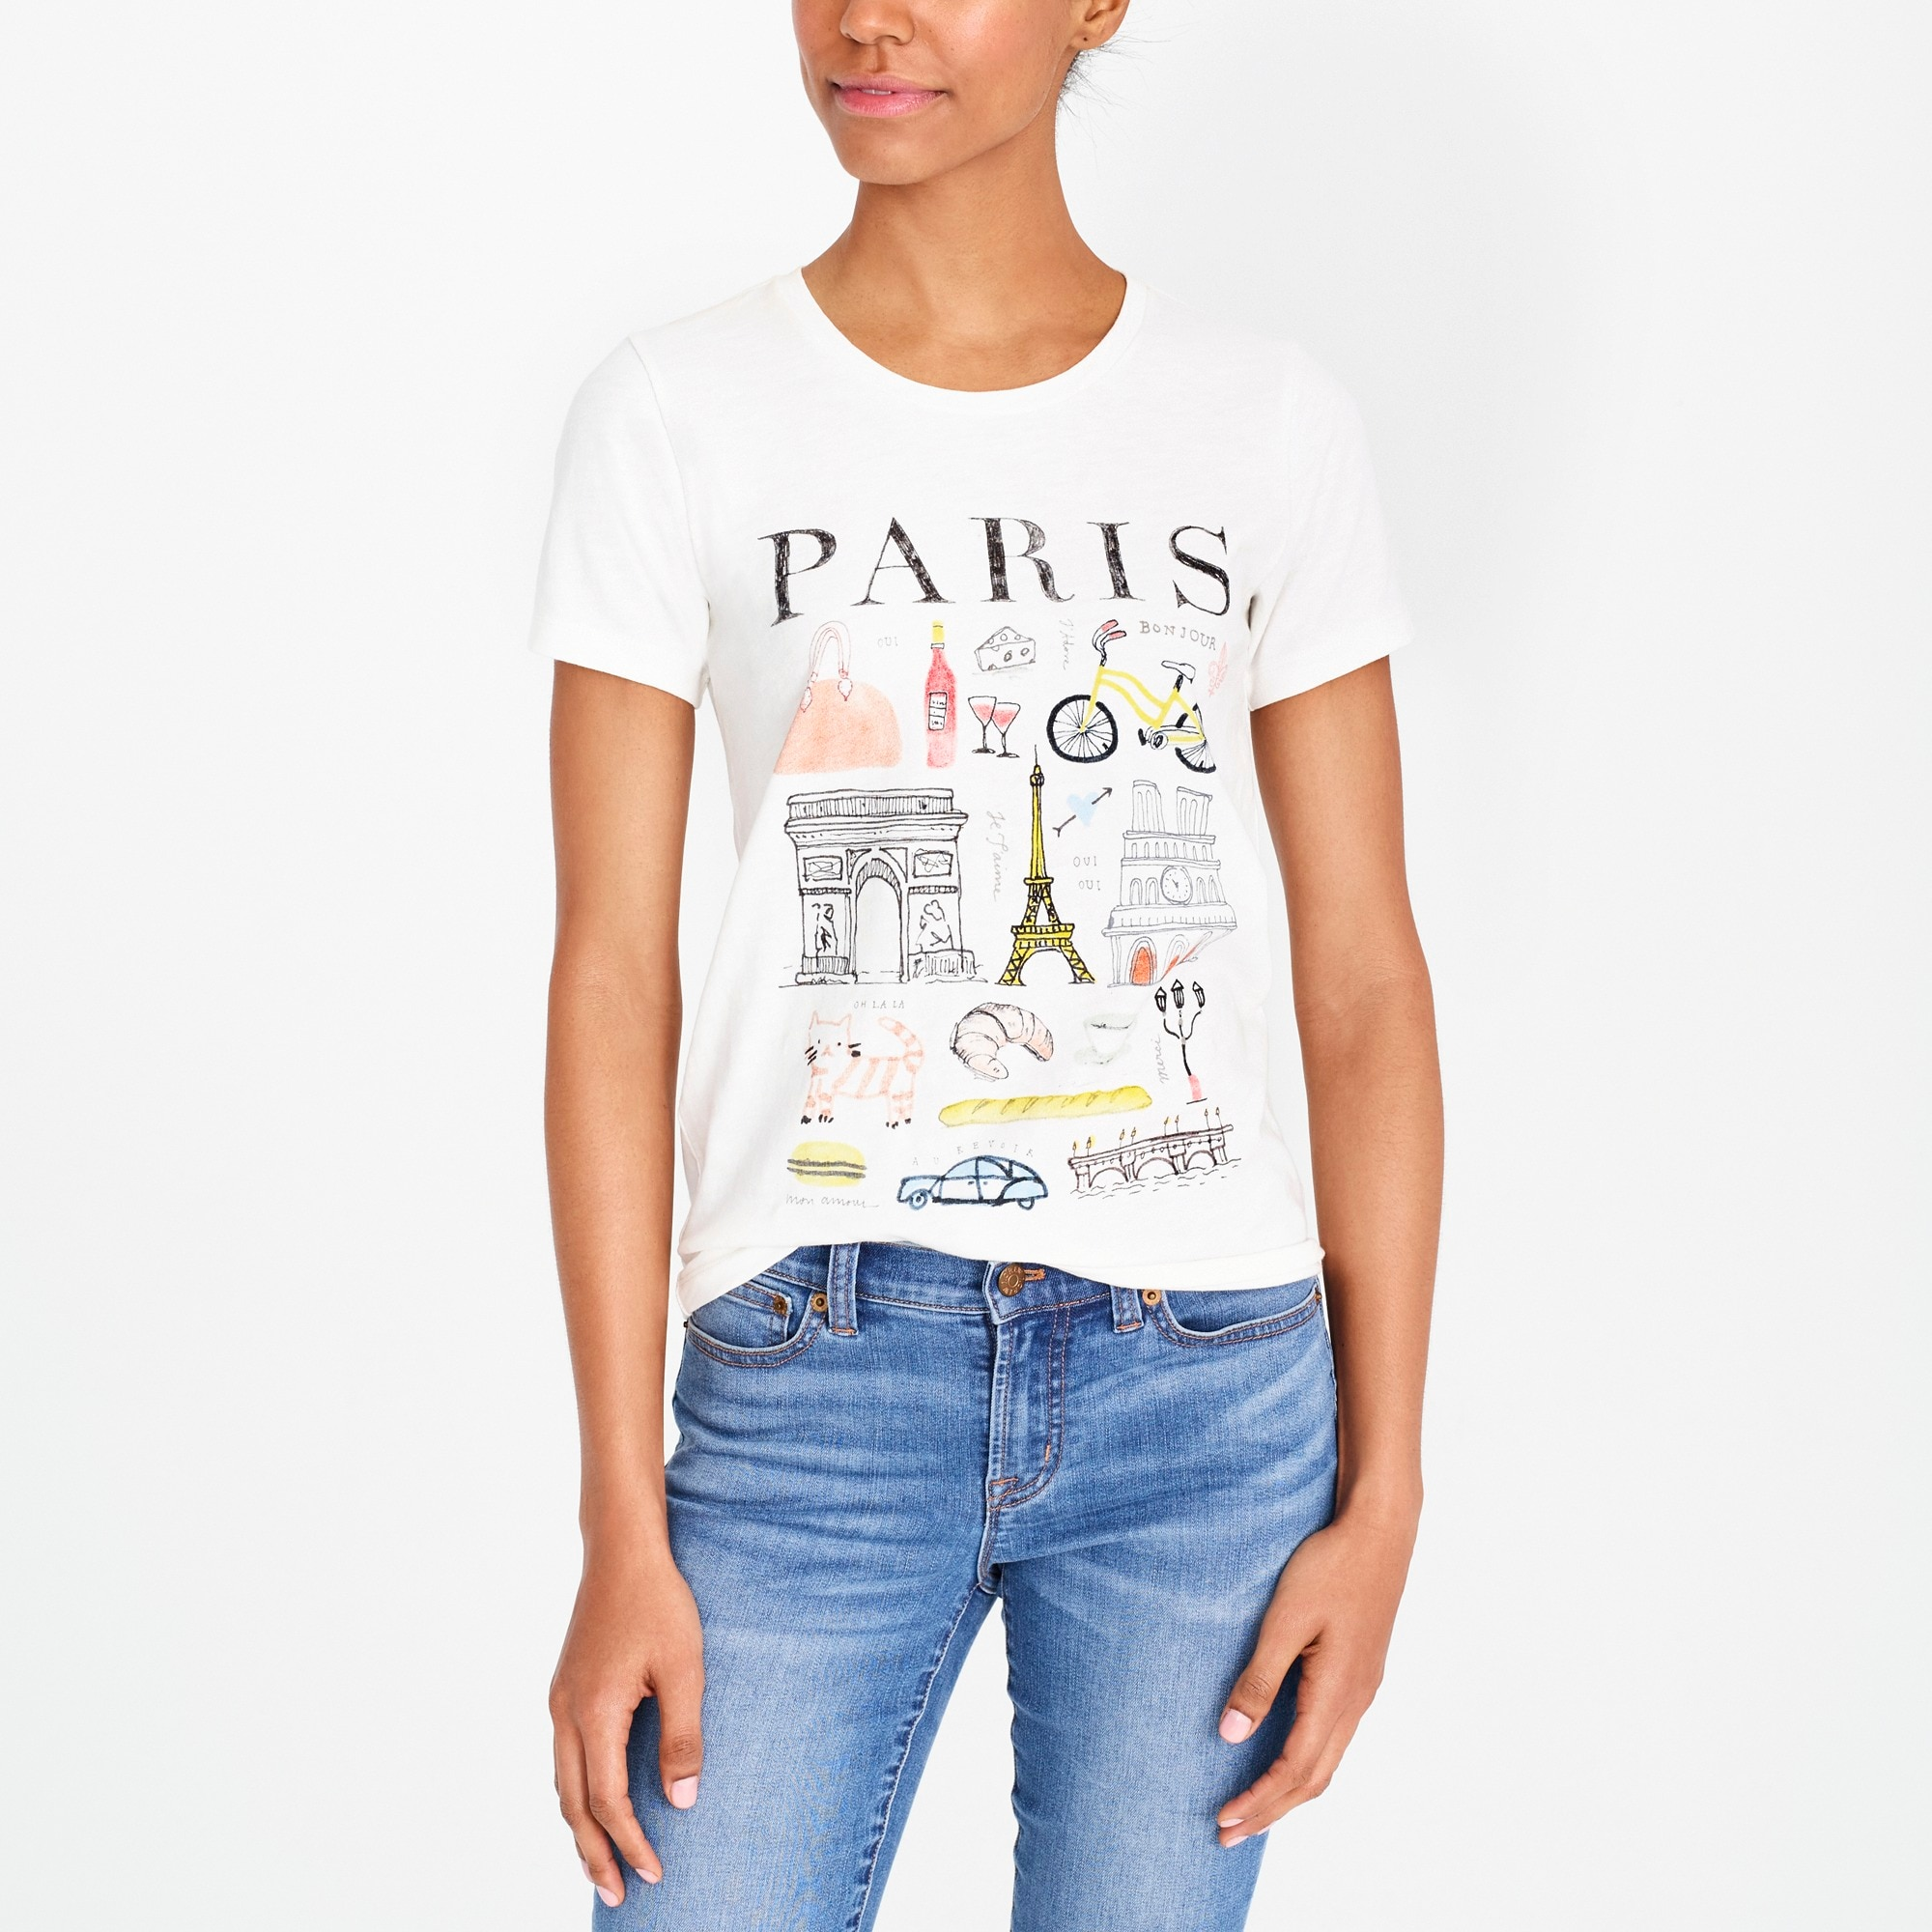 paris collector t-shirt : factorywomen graphic & collector t-shirts